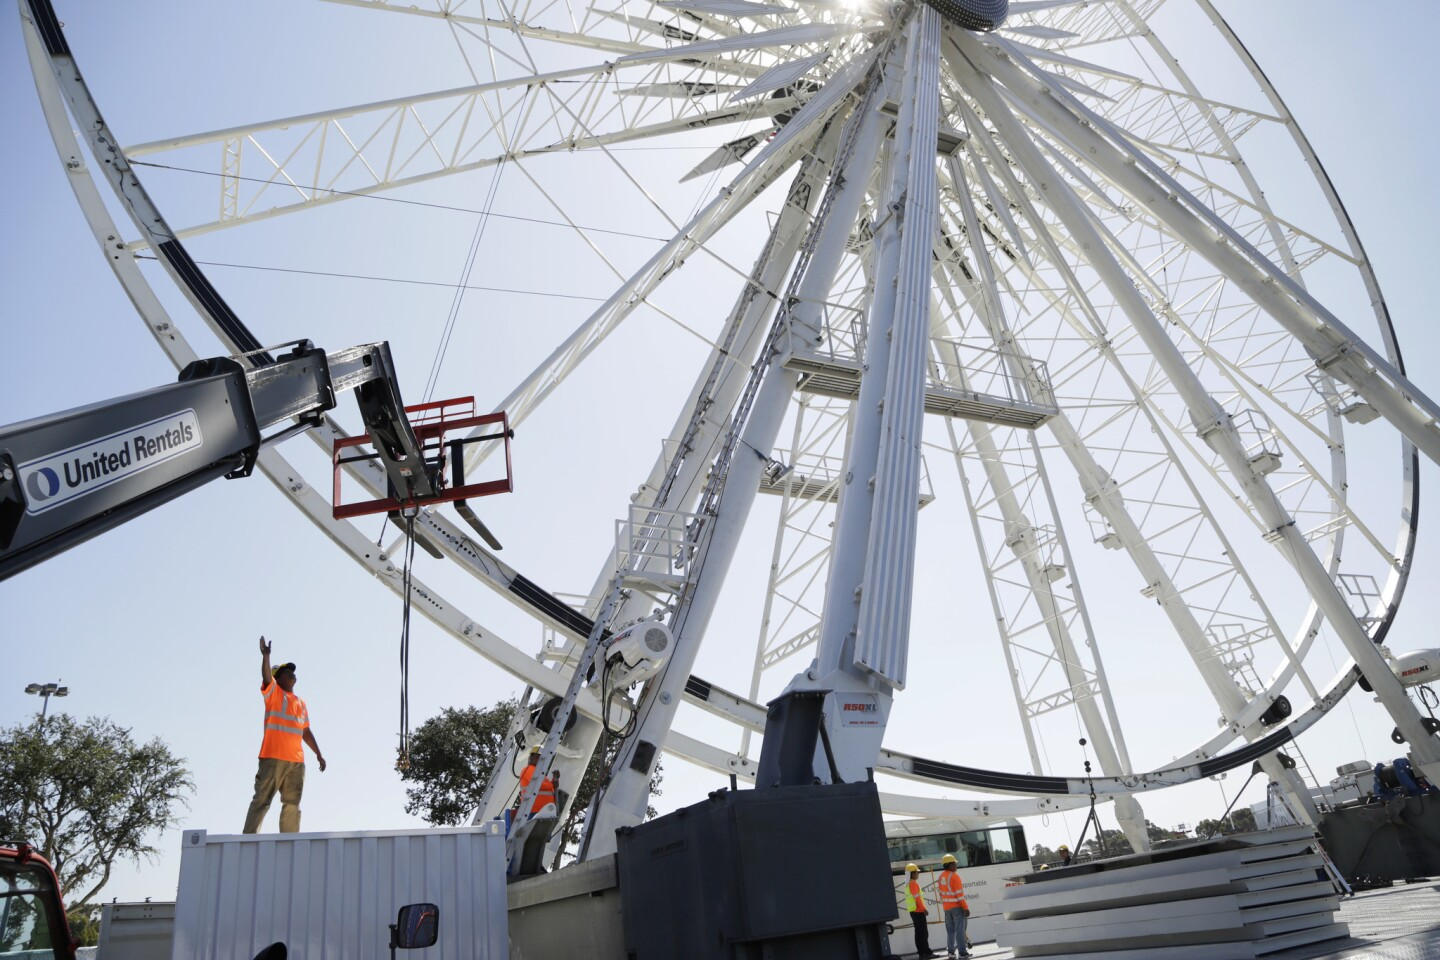 Nabeel Meyer directs a forklift as a large Ferris wheel is set up for this year's Orange County Fair in Costa Mesa, which will run from Friday to Aug. 11.